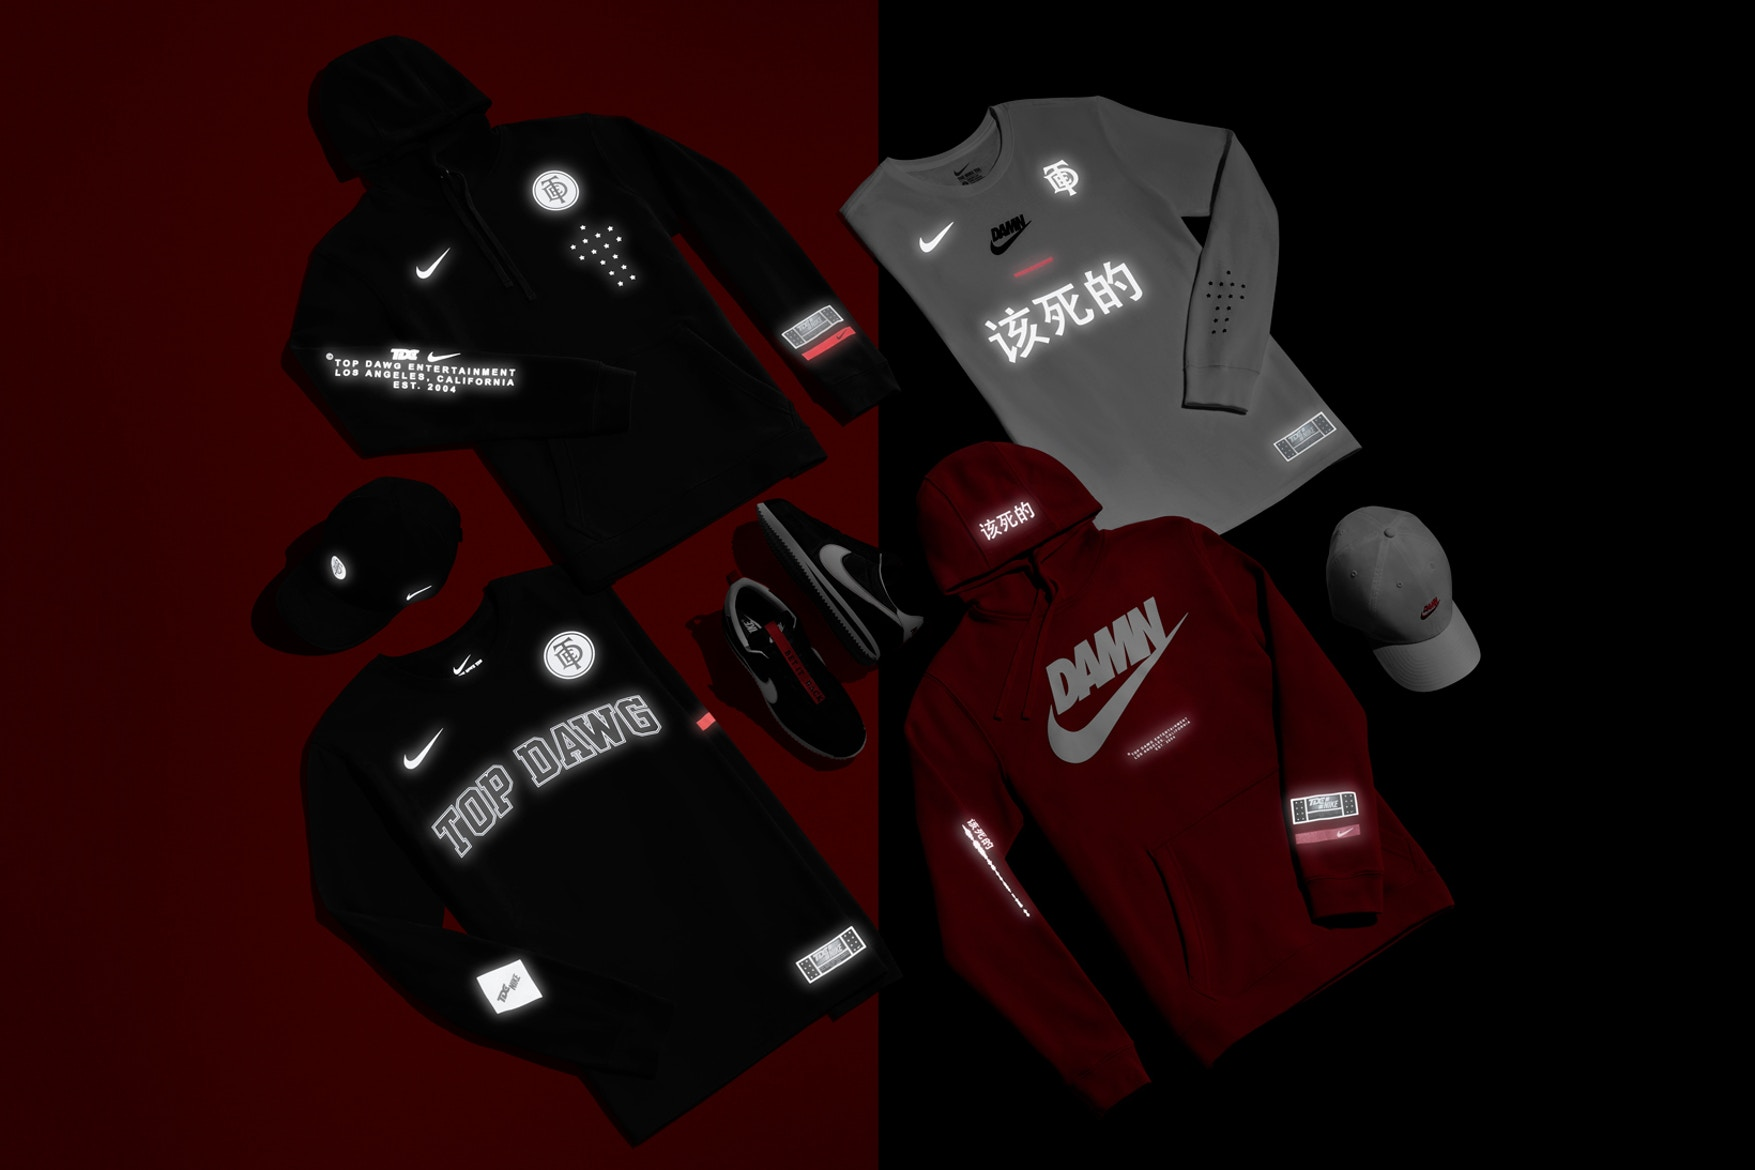 a22f503f Footwear and apparel will make up this nice set of gear, including the  standout Nike Cortez Kenny III we saw TDE president Dave Free preview on  Instagram a ...